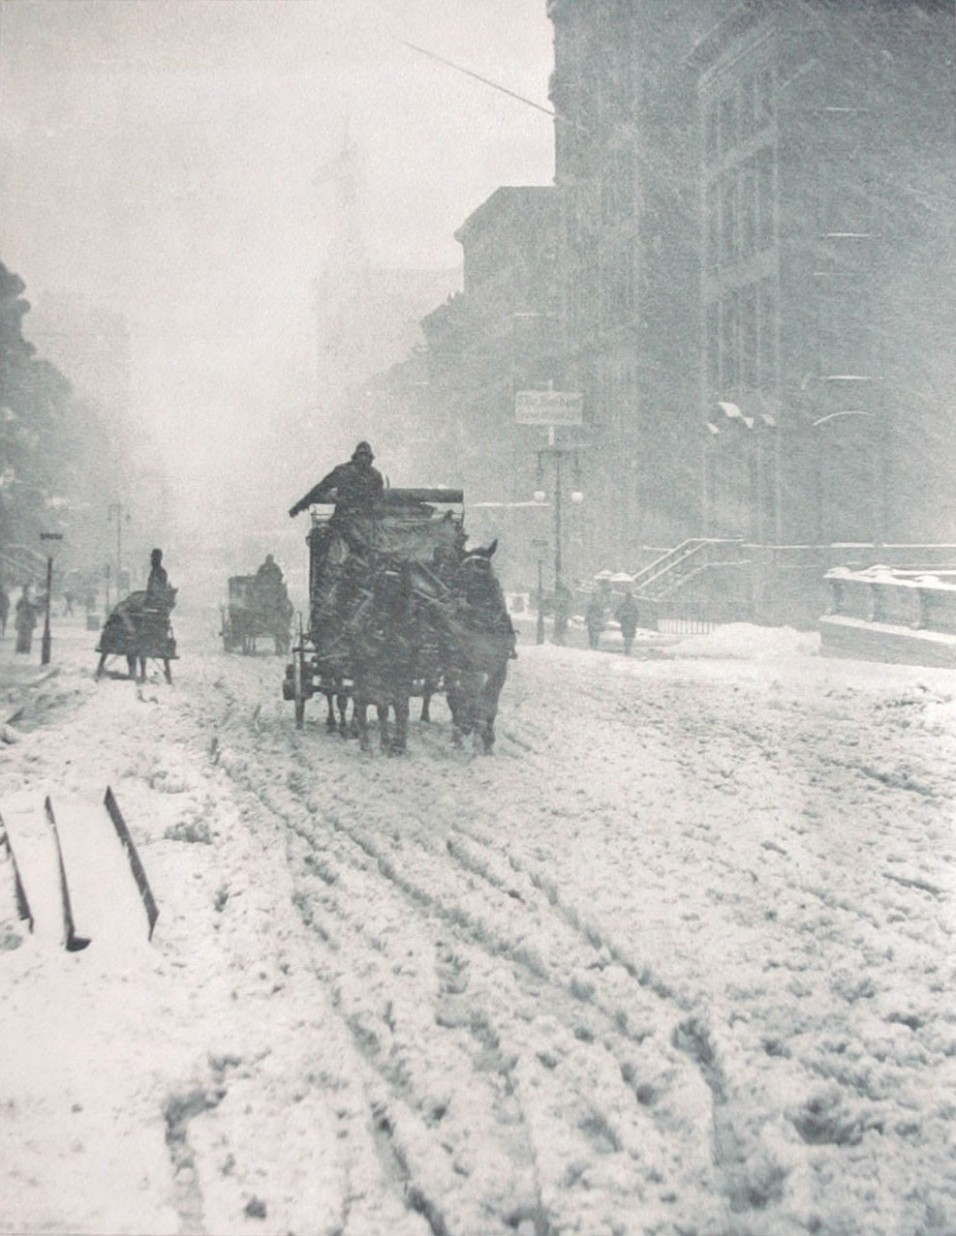 Apparently, it's always been hard to find a cab during New York blizzards.  1893 'Winter on Fifth Avenue' - Alfred Stieglitz, via retronaut